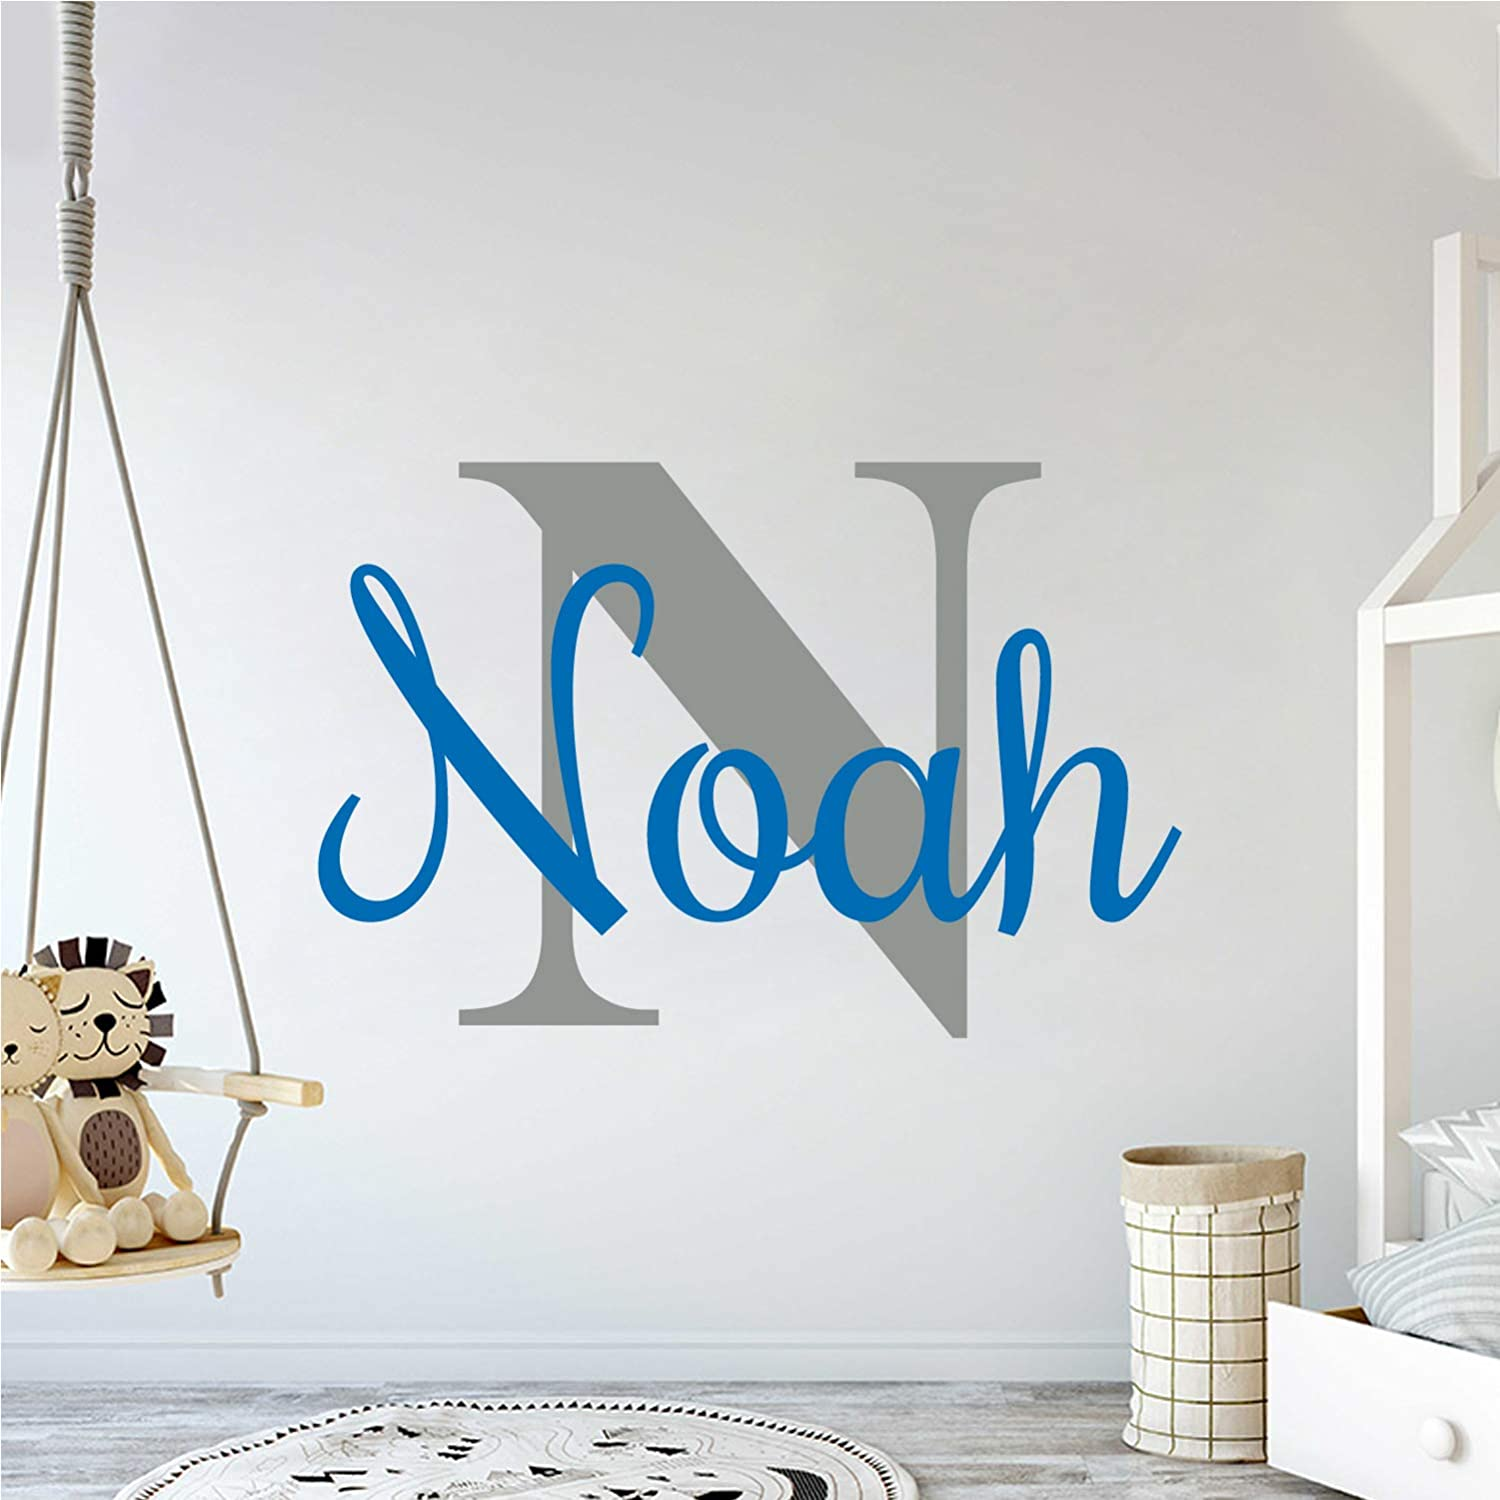 Multiple Font 70% OFF Outlet Custom Name Initial Nursery Outlet sale feature W Decal - Wall Mural